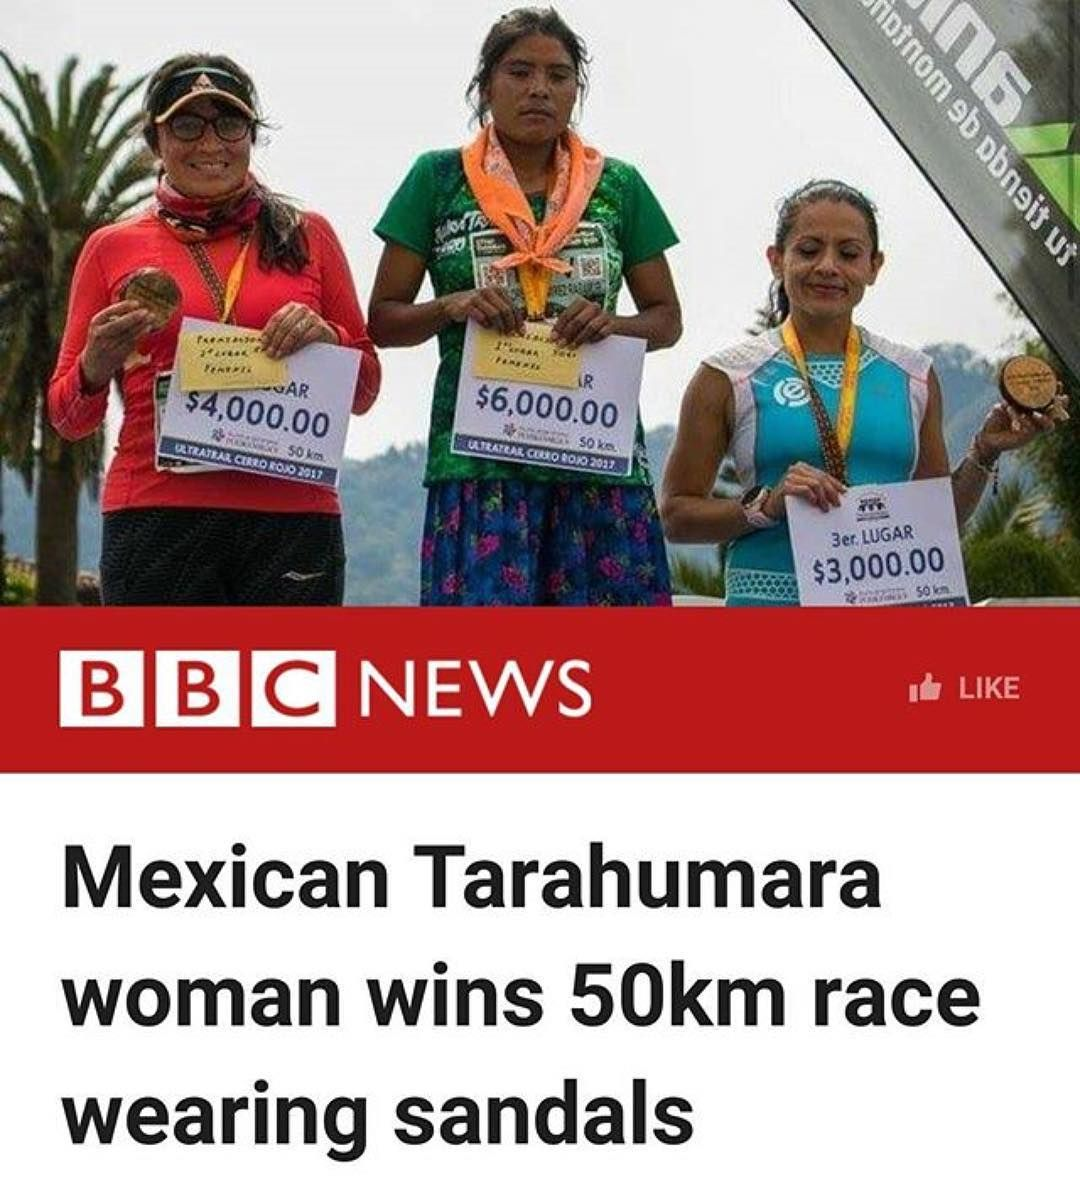 """""""A 22-year-old woman from Mexico's Tarahumara indigenous community has won a 50km (31 miles) ultramarathon wearing sandals.  María Lorena Ramírez defeated 500 other runners from 12 countries in the female category of the Ultra Trail Cerro Rojo in Puebla in central Mexico.  She ran without any professional gear and her pair of sandals was reportedly made from recycled tyre rubber.  The Tarahumara are famous for being excellent runners.  The race was held on 29 April but only now has word…"""